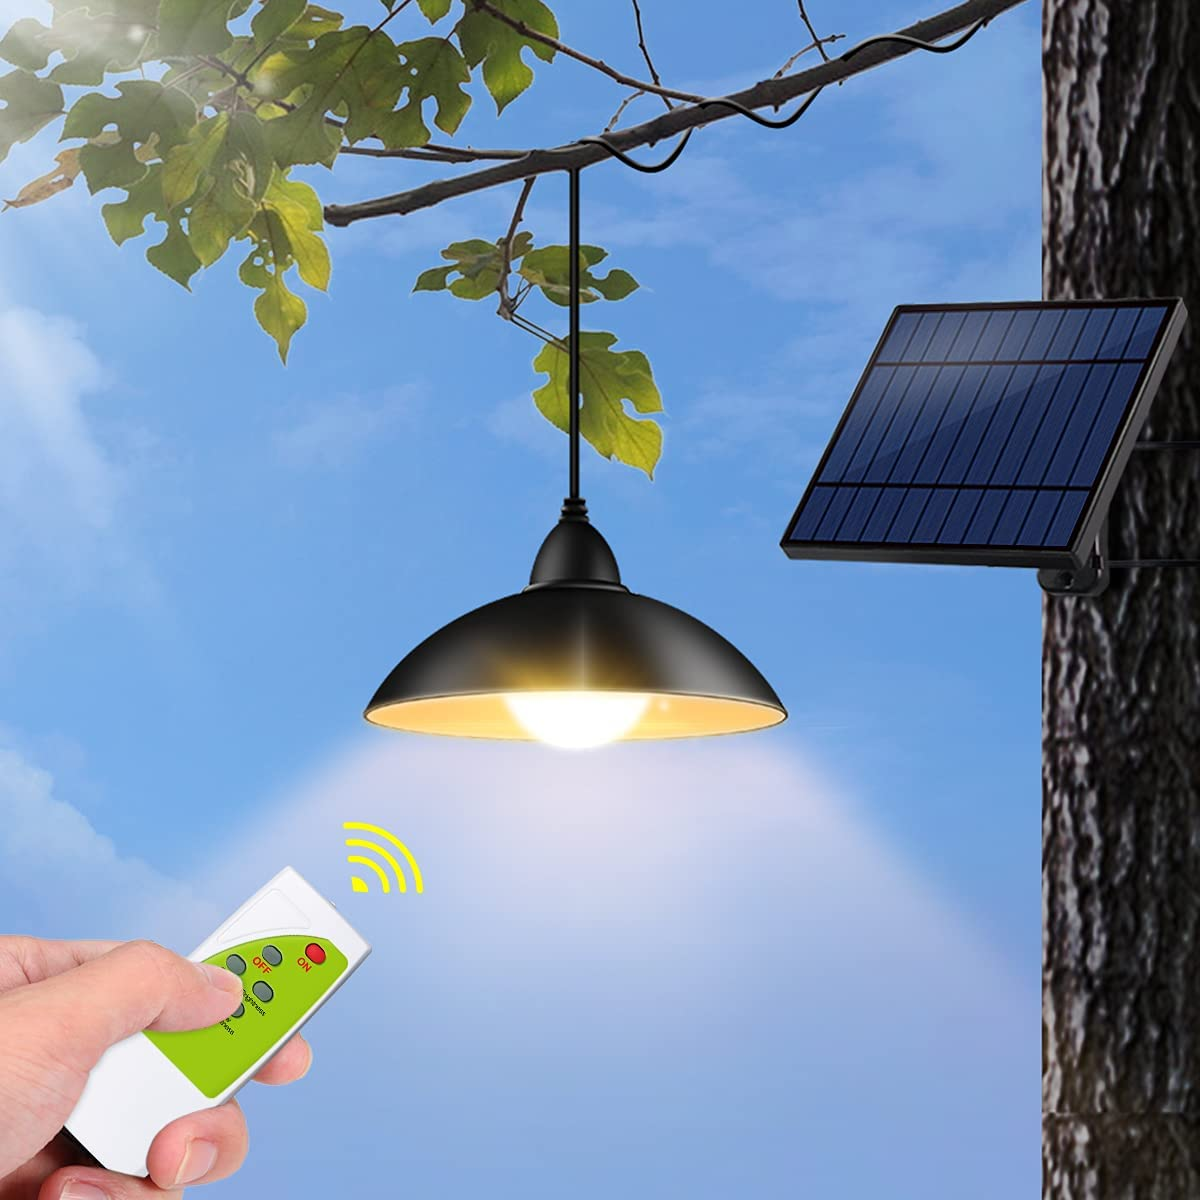 Outdoor Solar Lights, Tomshine IP65 Waterproof Outdoor Pendant Light with Remote Control, Brightness Adjustment Solar Shed Light for Garden Patio( Warm White)